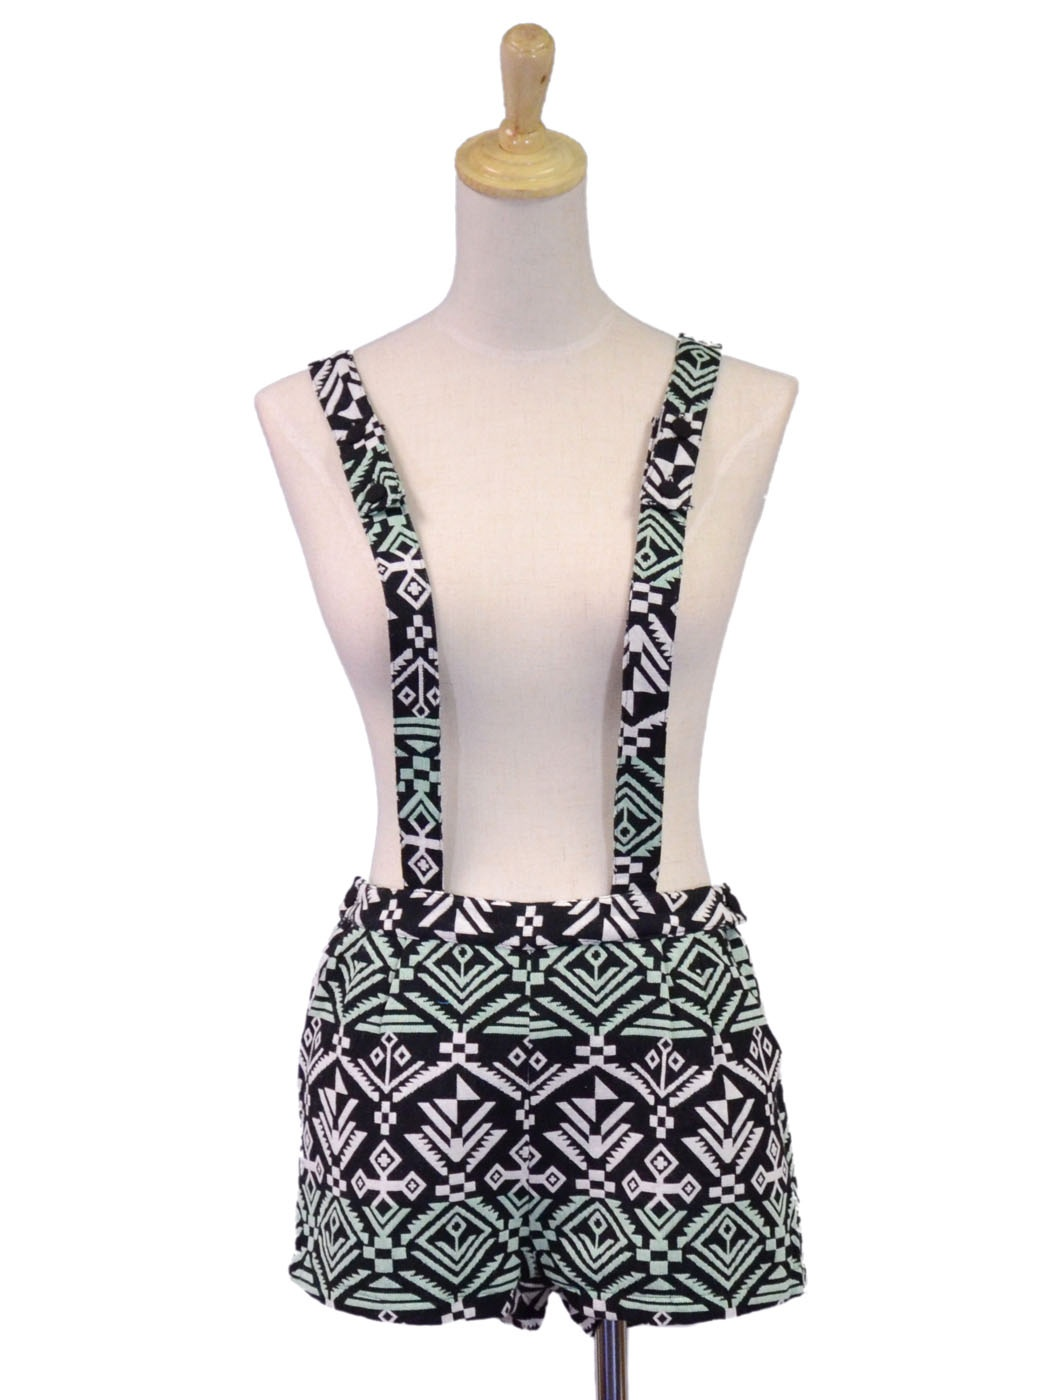 English Rose Bright Aztec Print Overalls Romper With Button Adjustable Straps [2Y0216] - $34.90 : Alilang, Fashion Costume Jewelry & Accessories Store